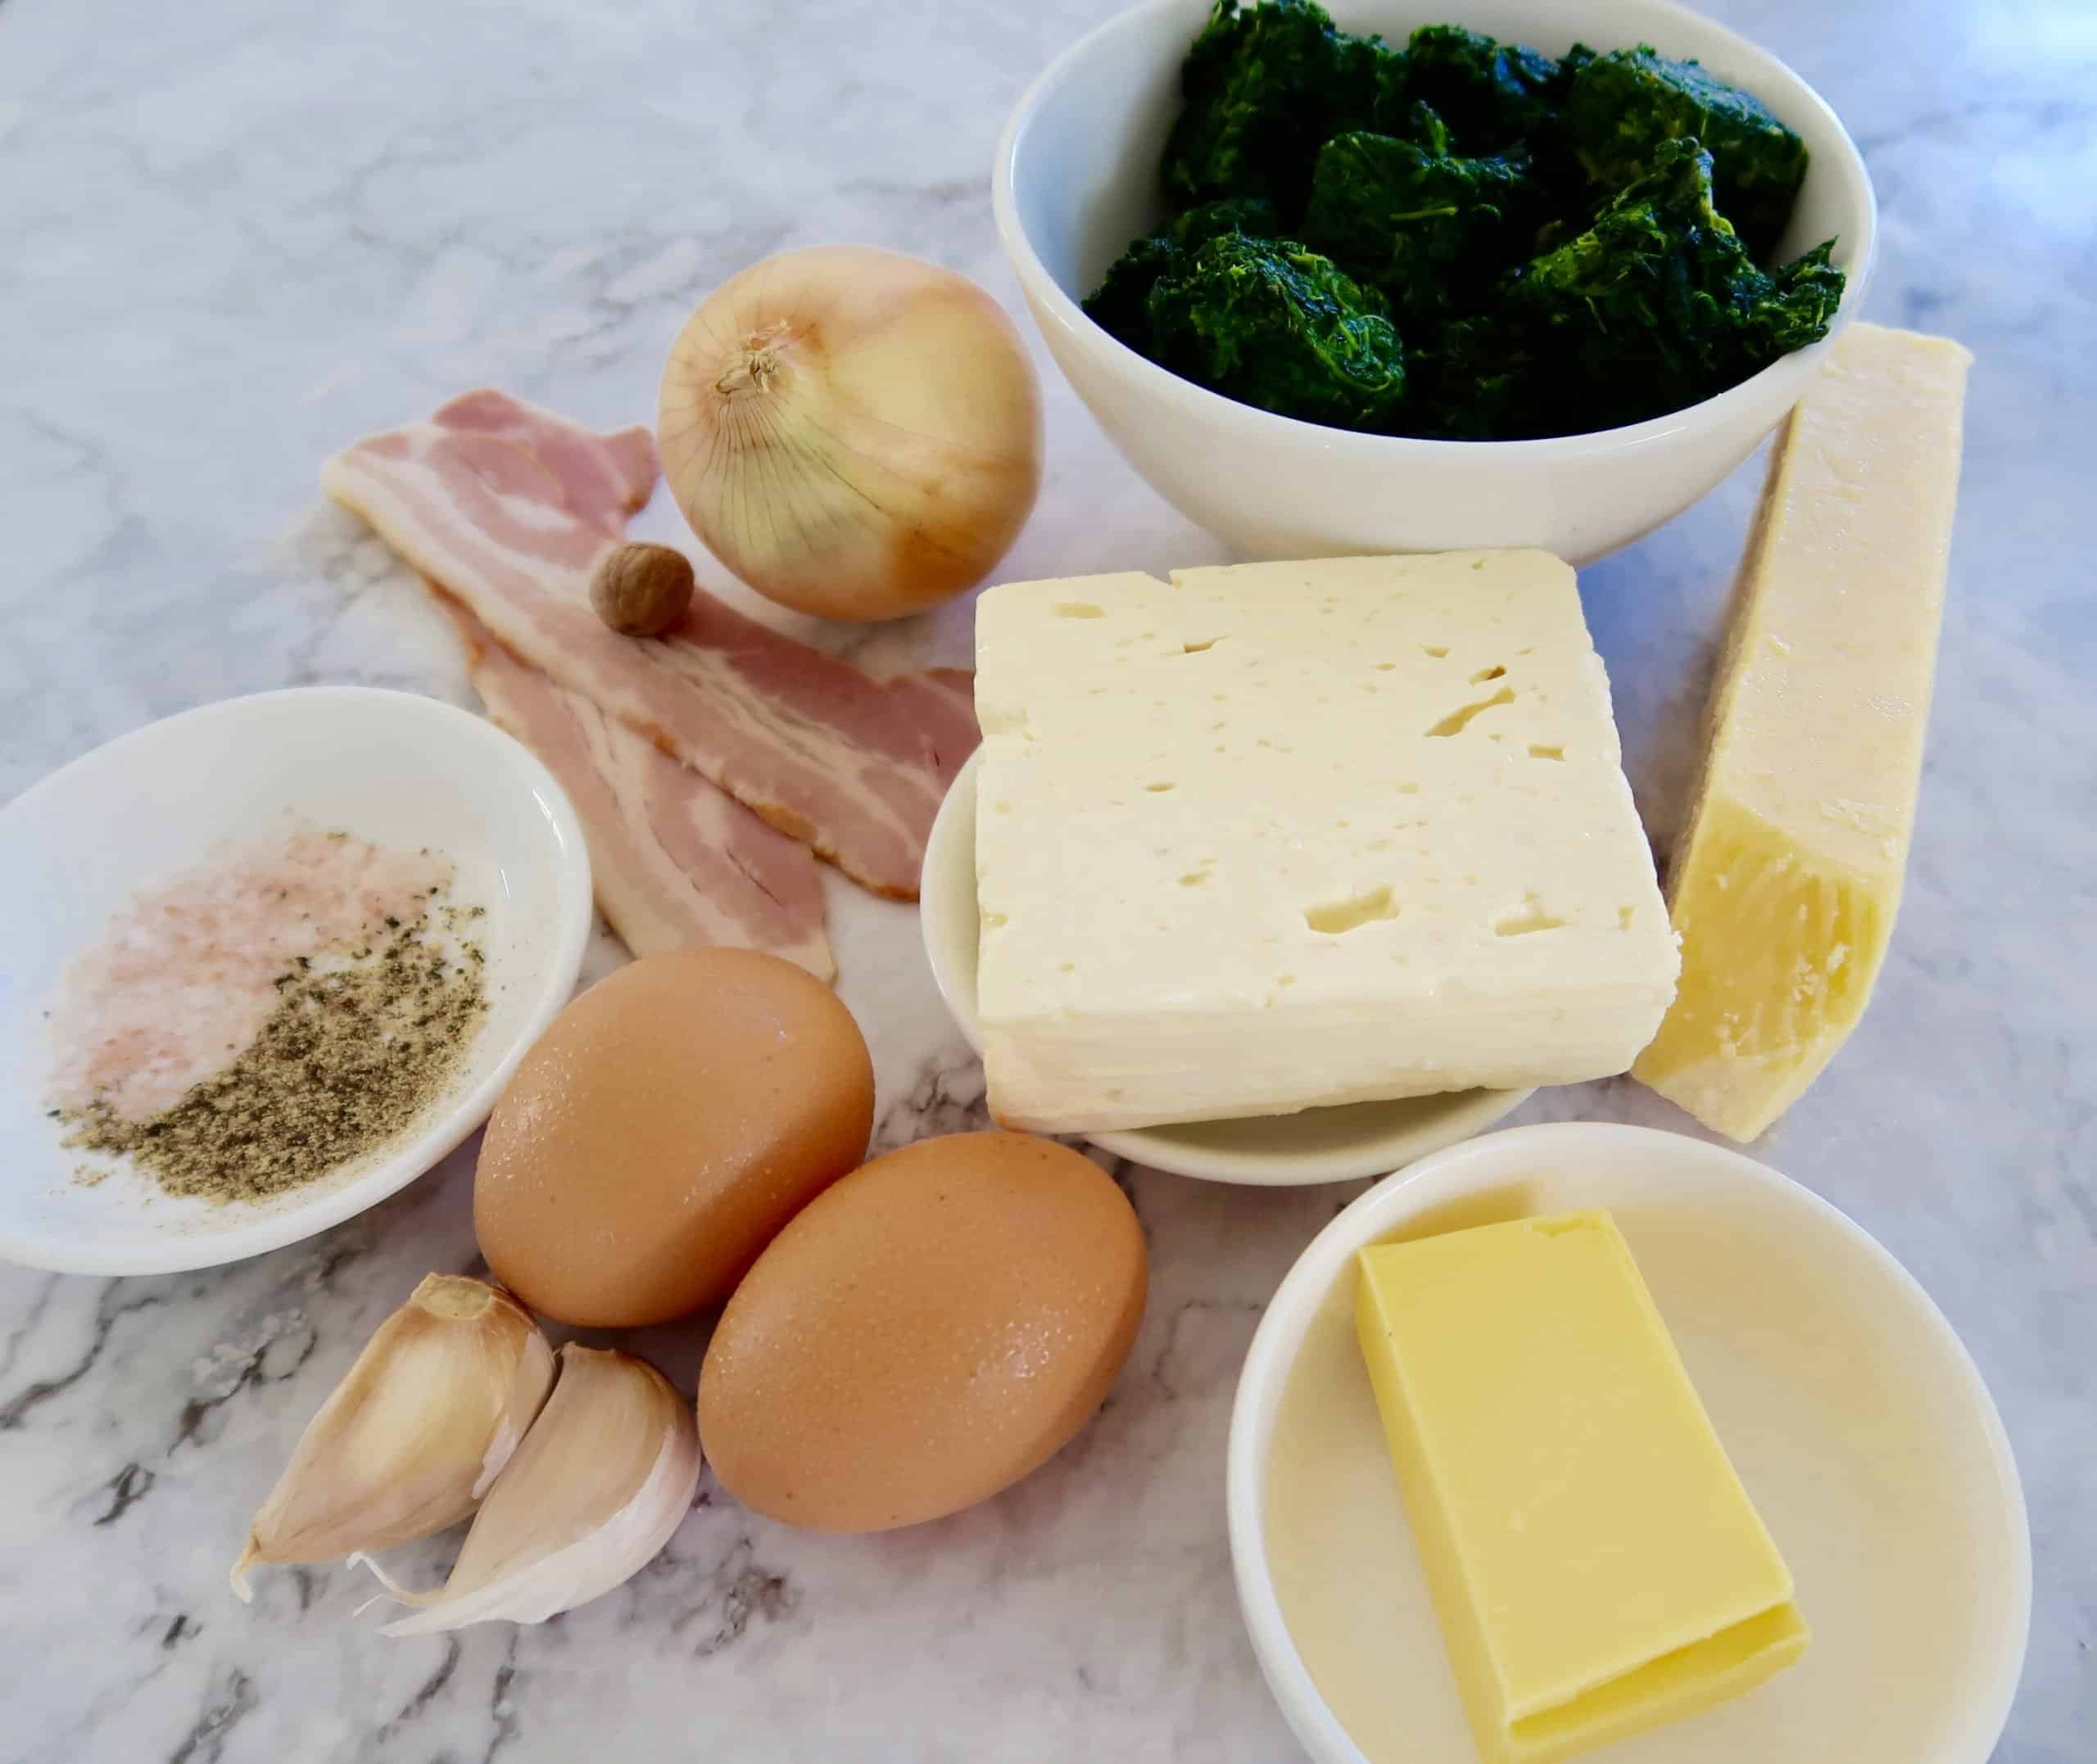 cheese spinach and bacon puffs ingredients prepared ready to make